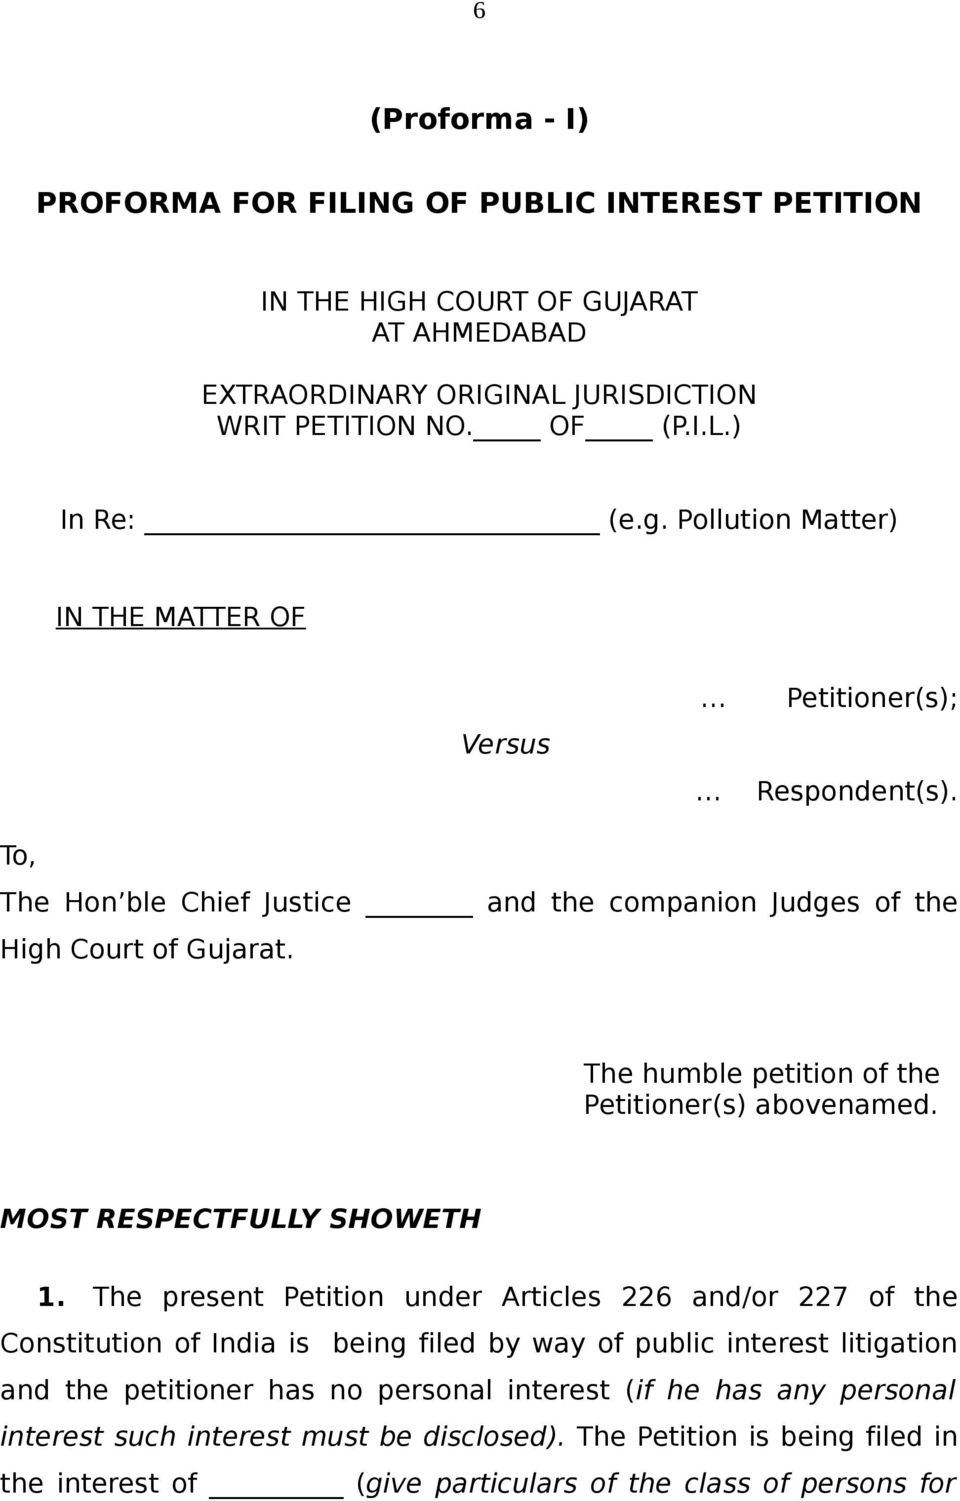 NOTIFICATION BY THE HIGH COURT OF GUJARAT AT AHMEDABAD (For